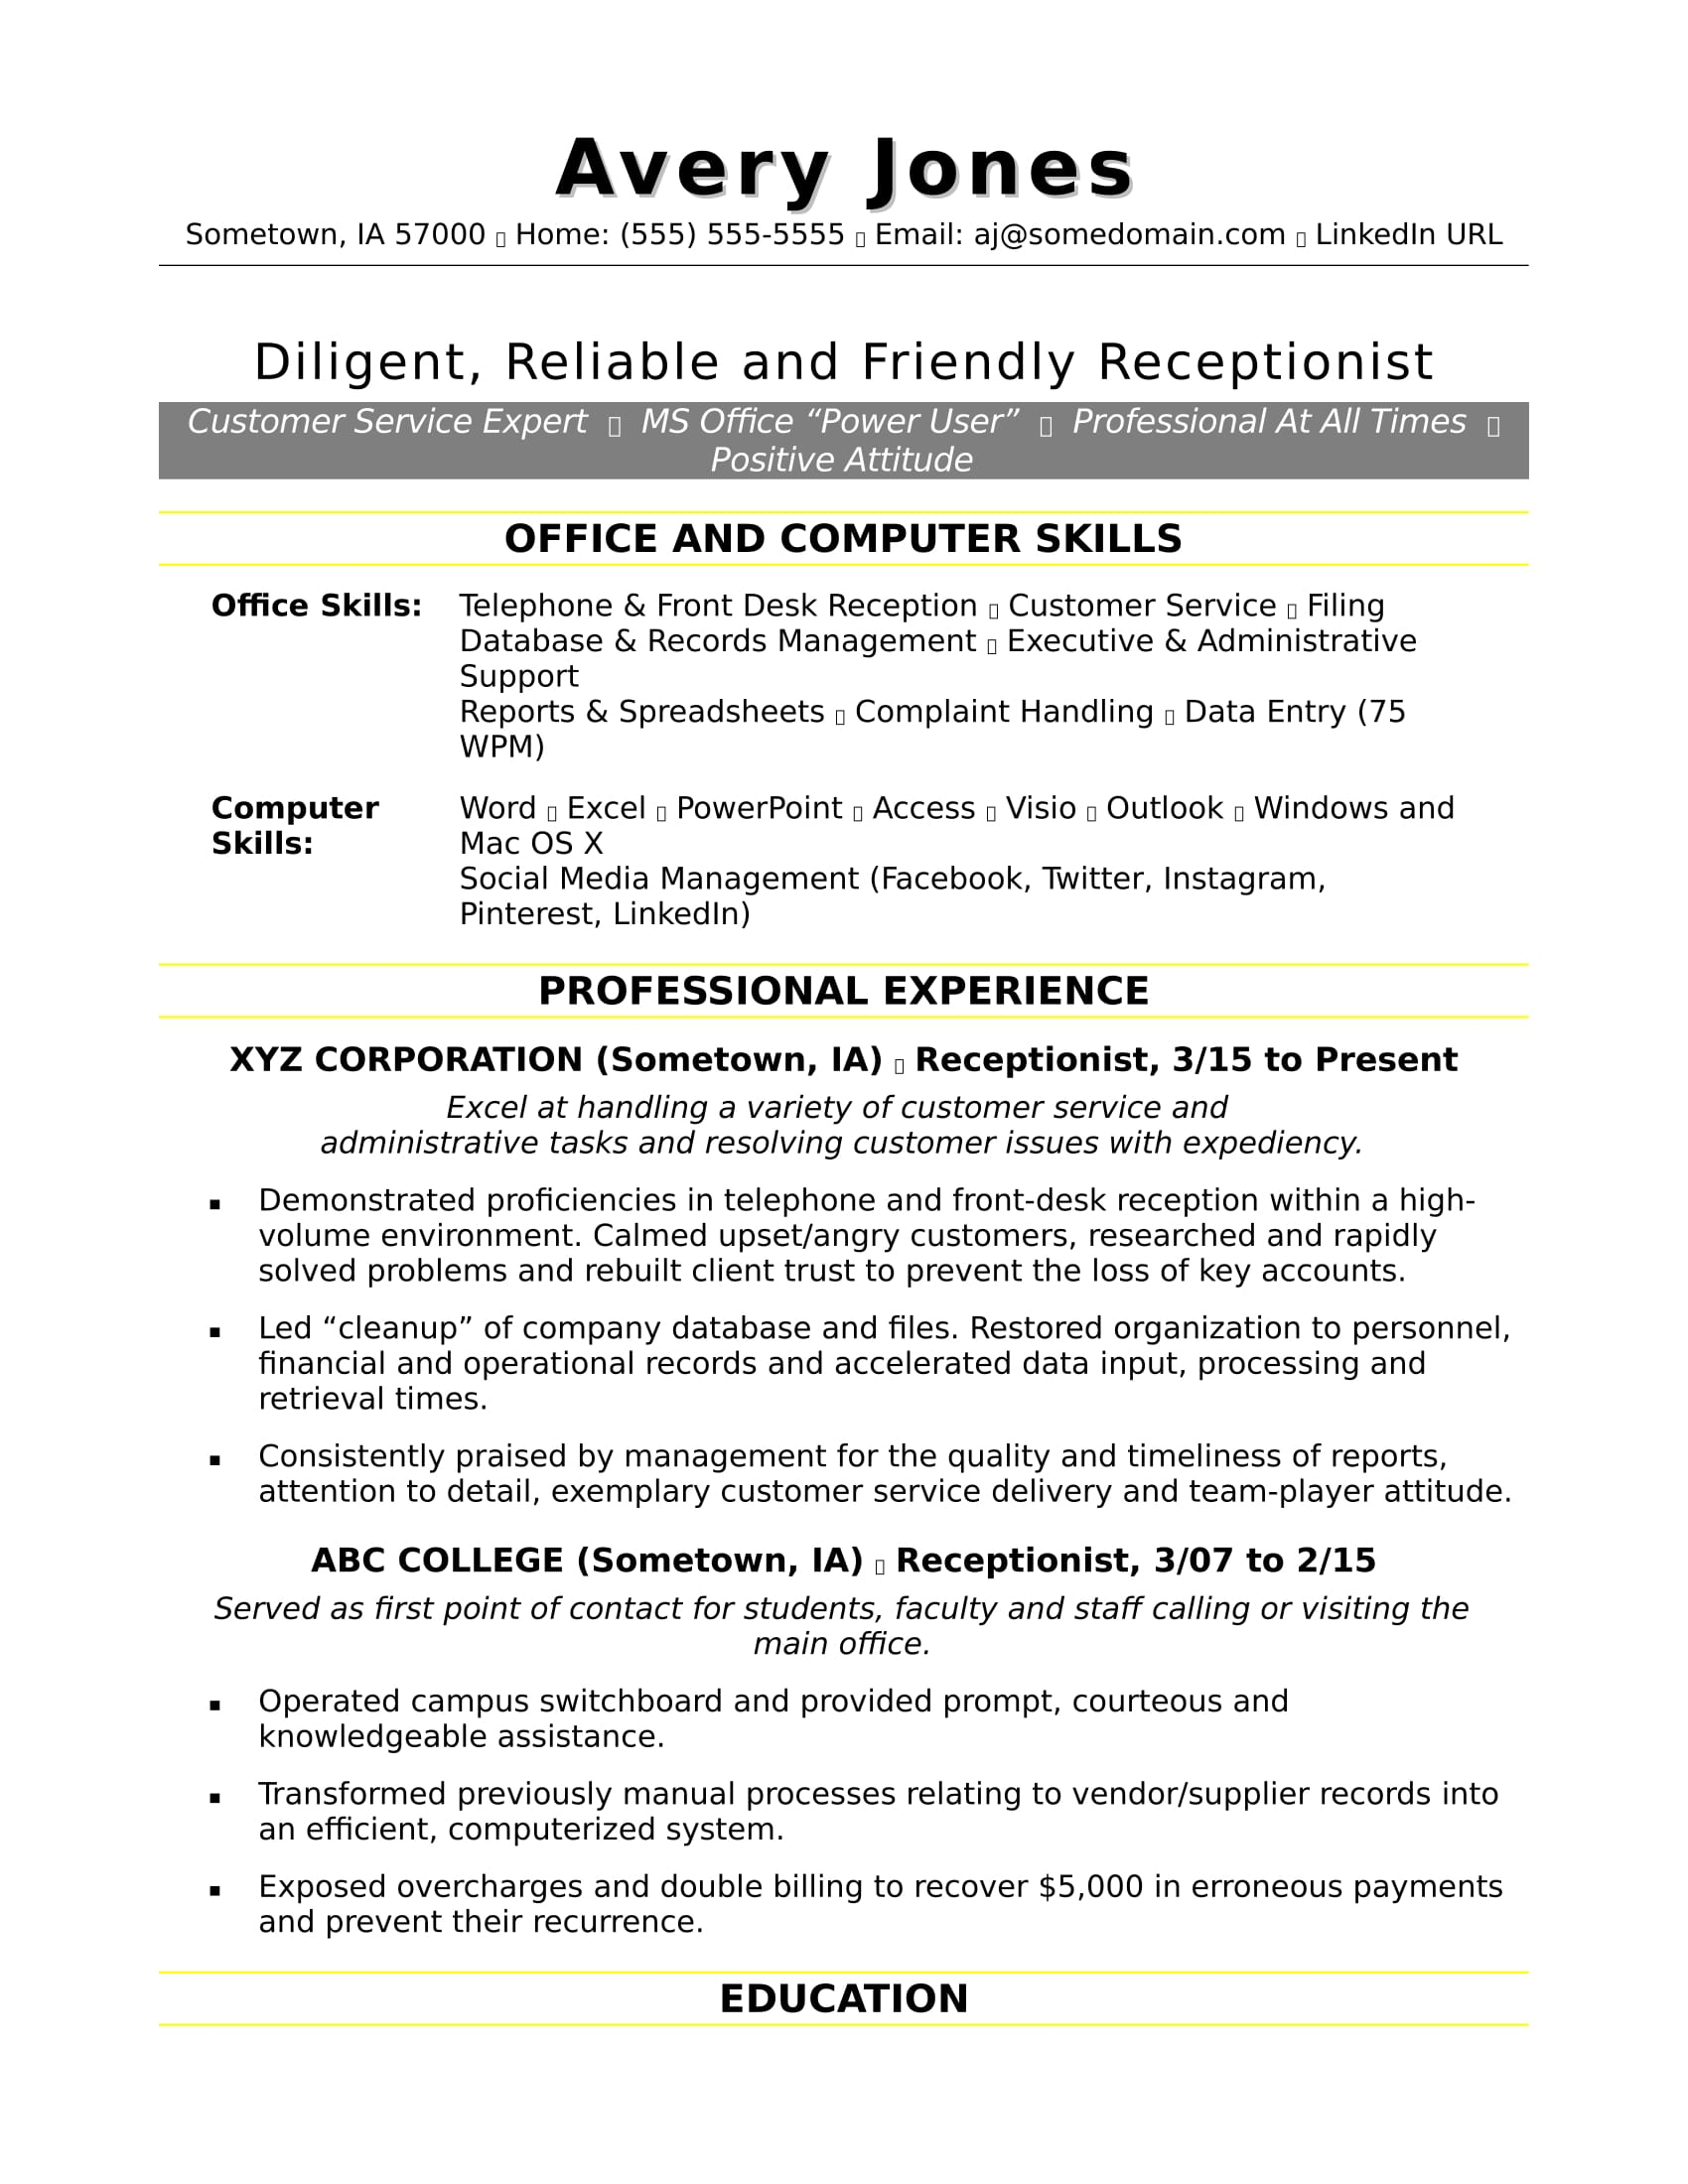 Sample Resume For A Receptionist  Sample College Resume